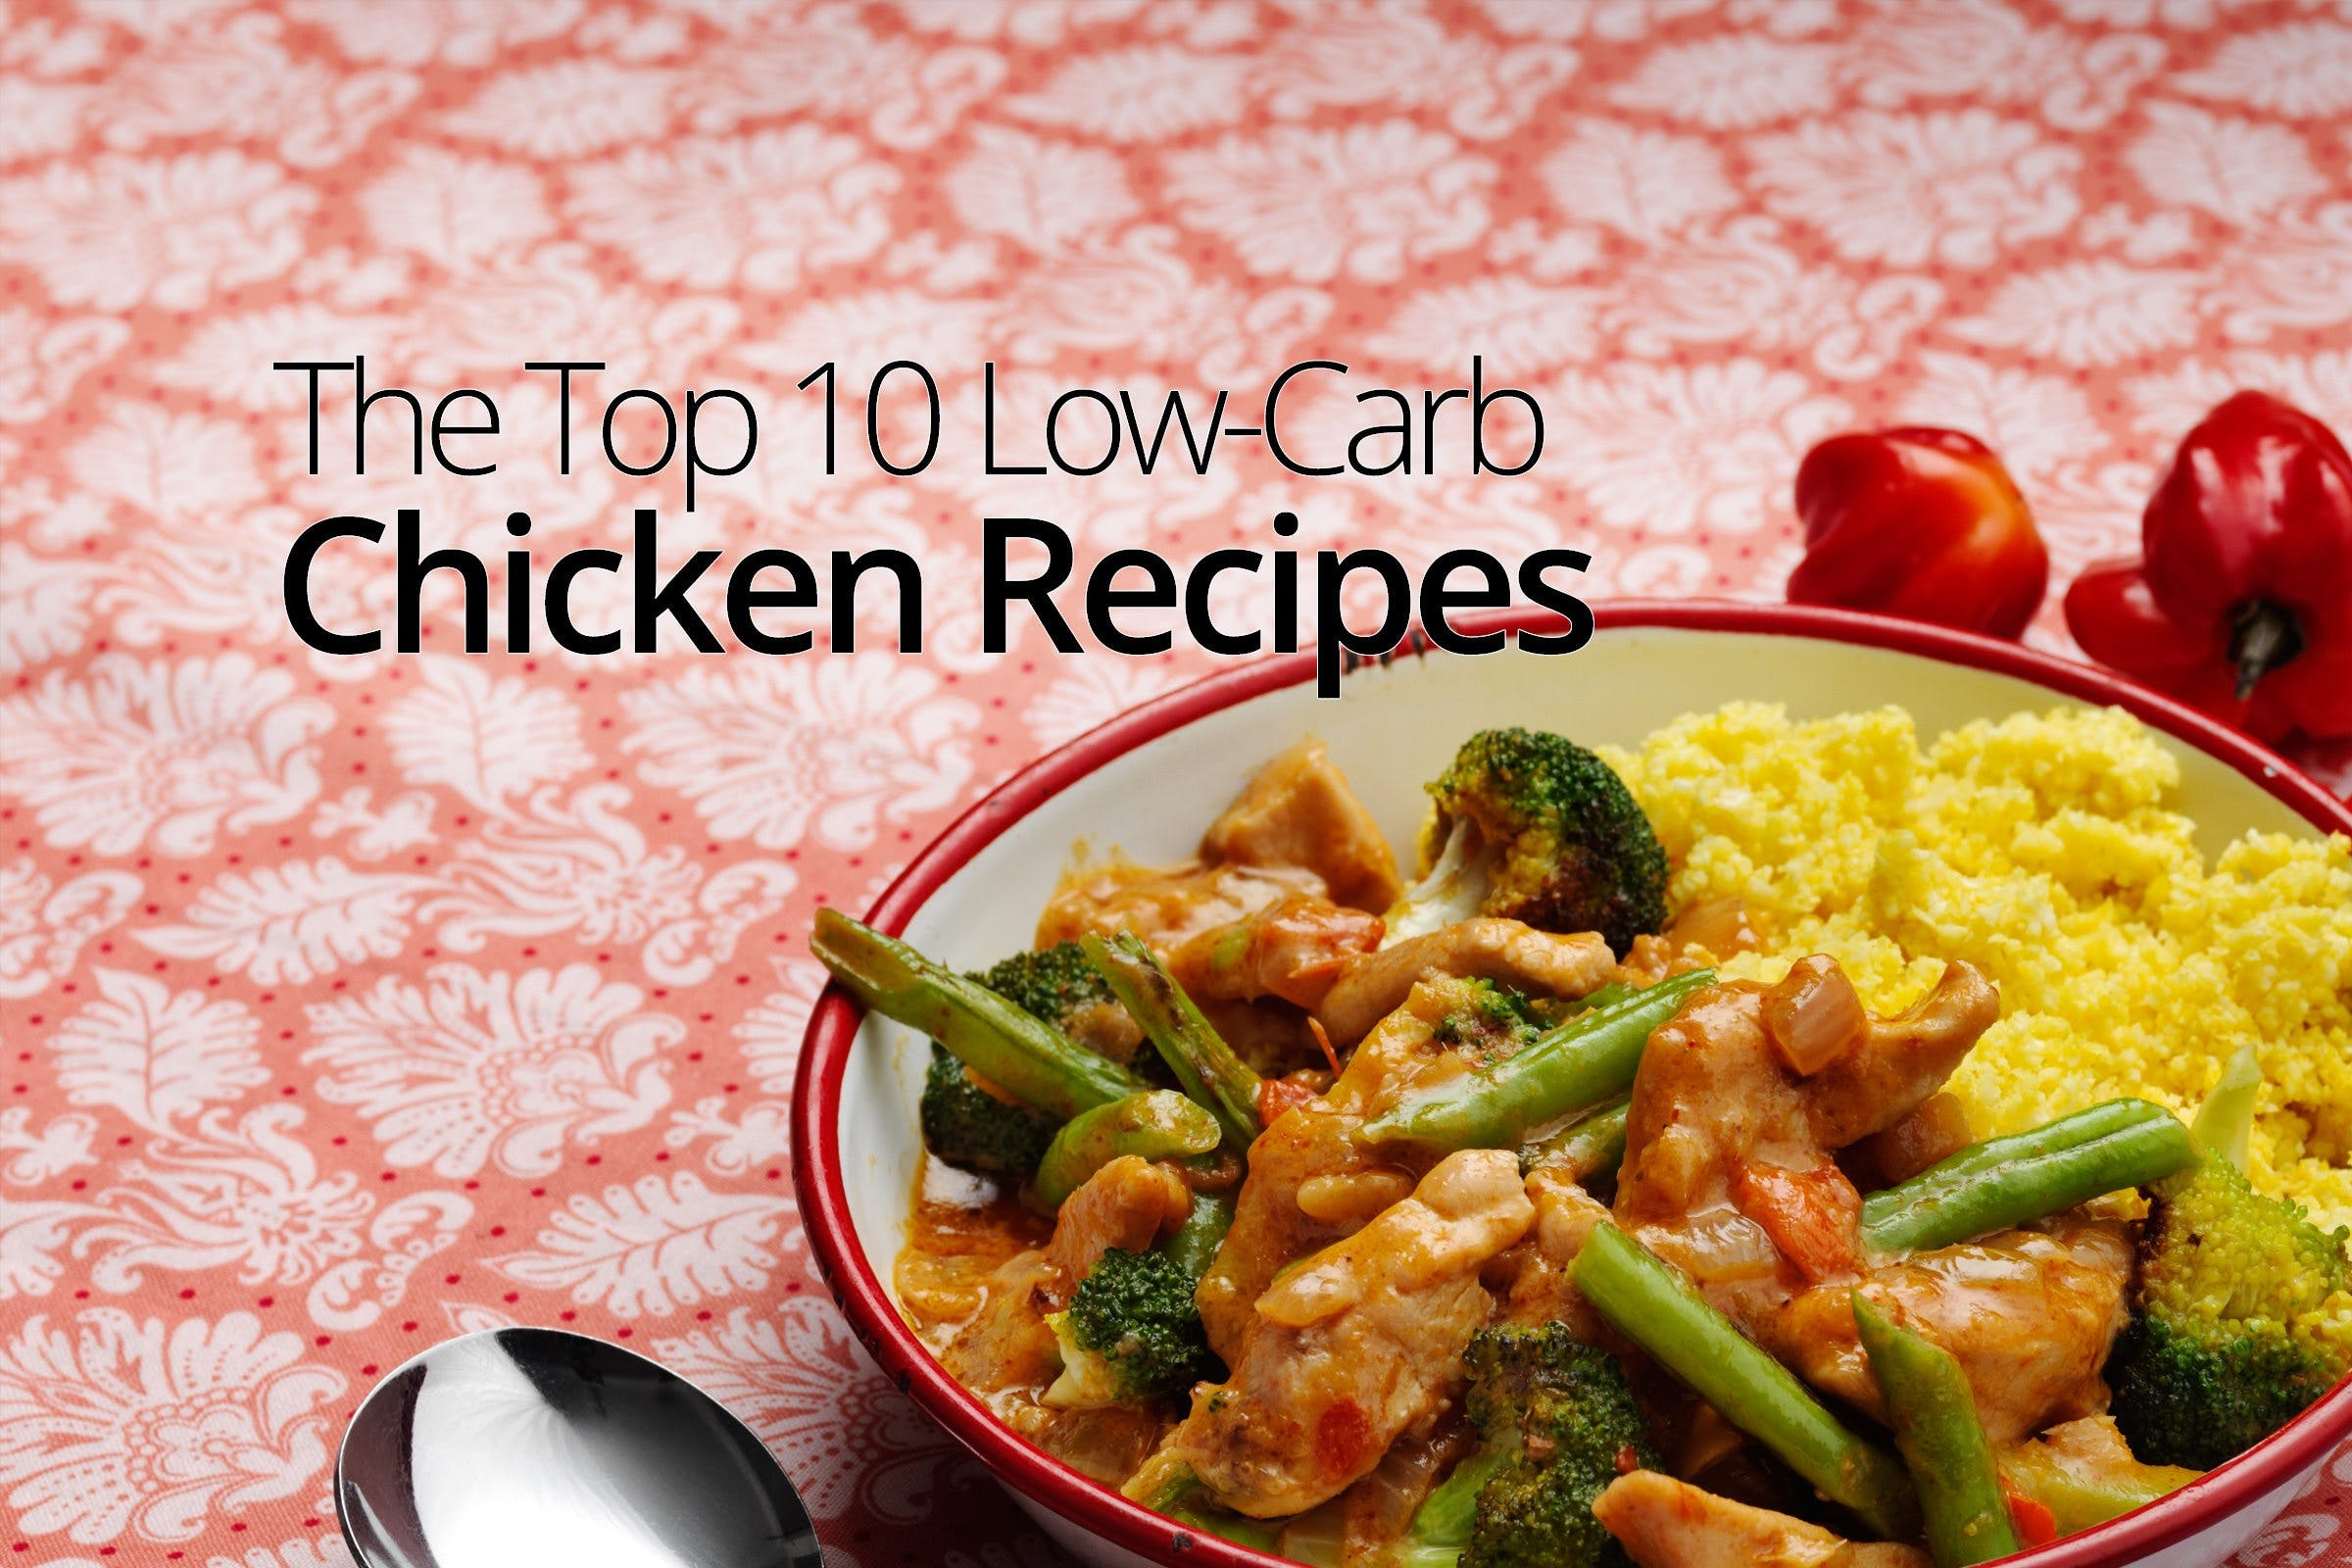 The Top 10 Low-Carb Chicken Recipes